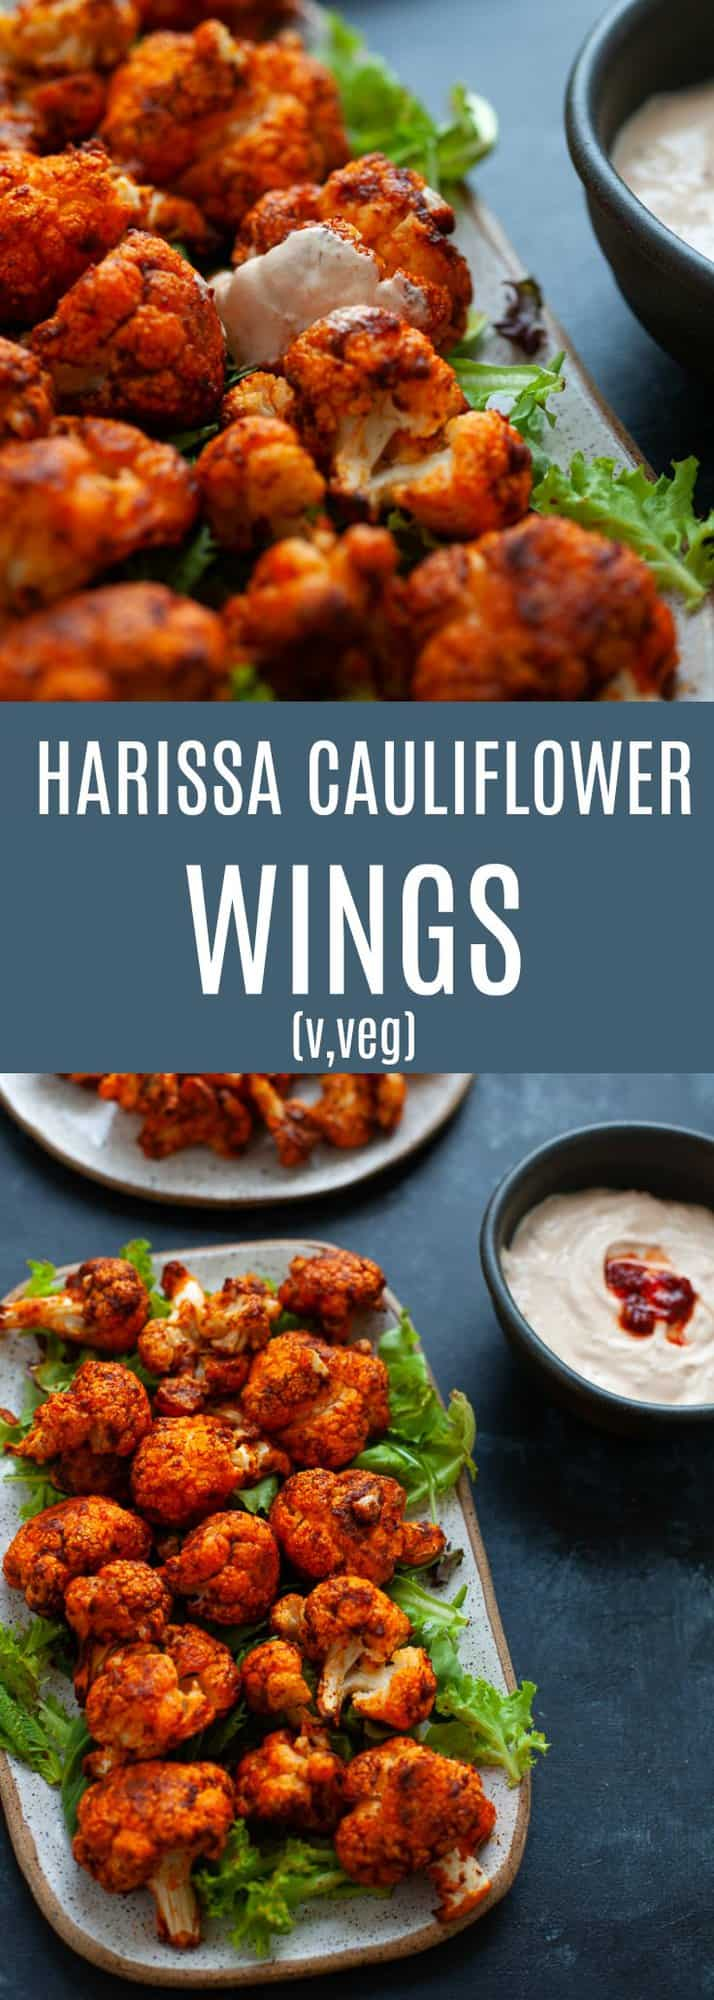 Spicy, smoky and totally satisfying, these harissa cauliflower wings are about to blow your mind. #vegetarian #harissa #middleeastern #vegan